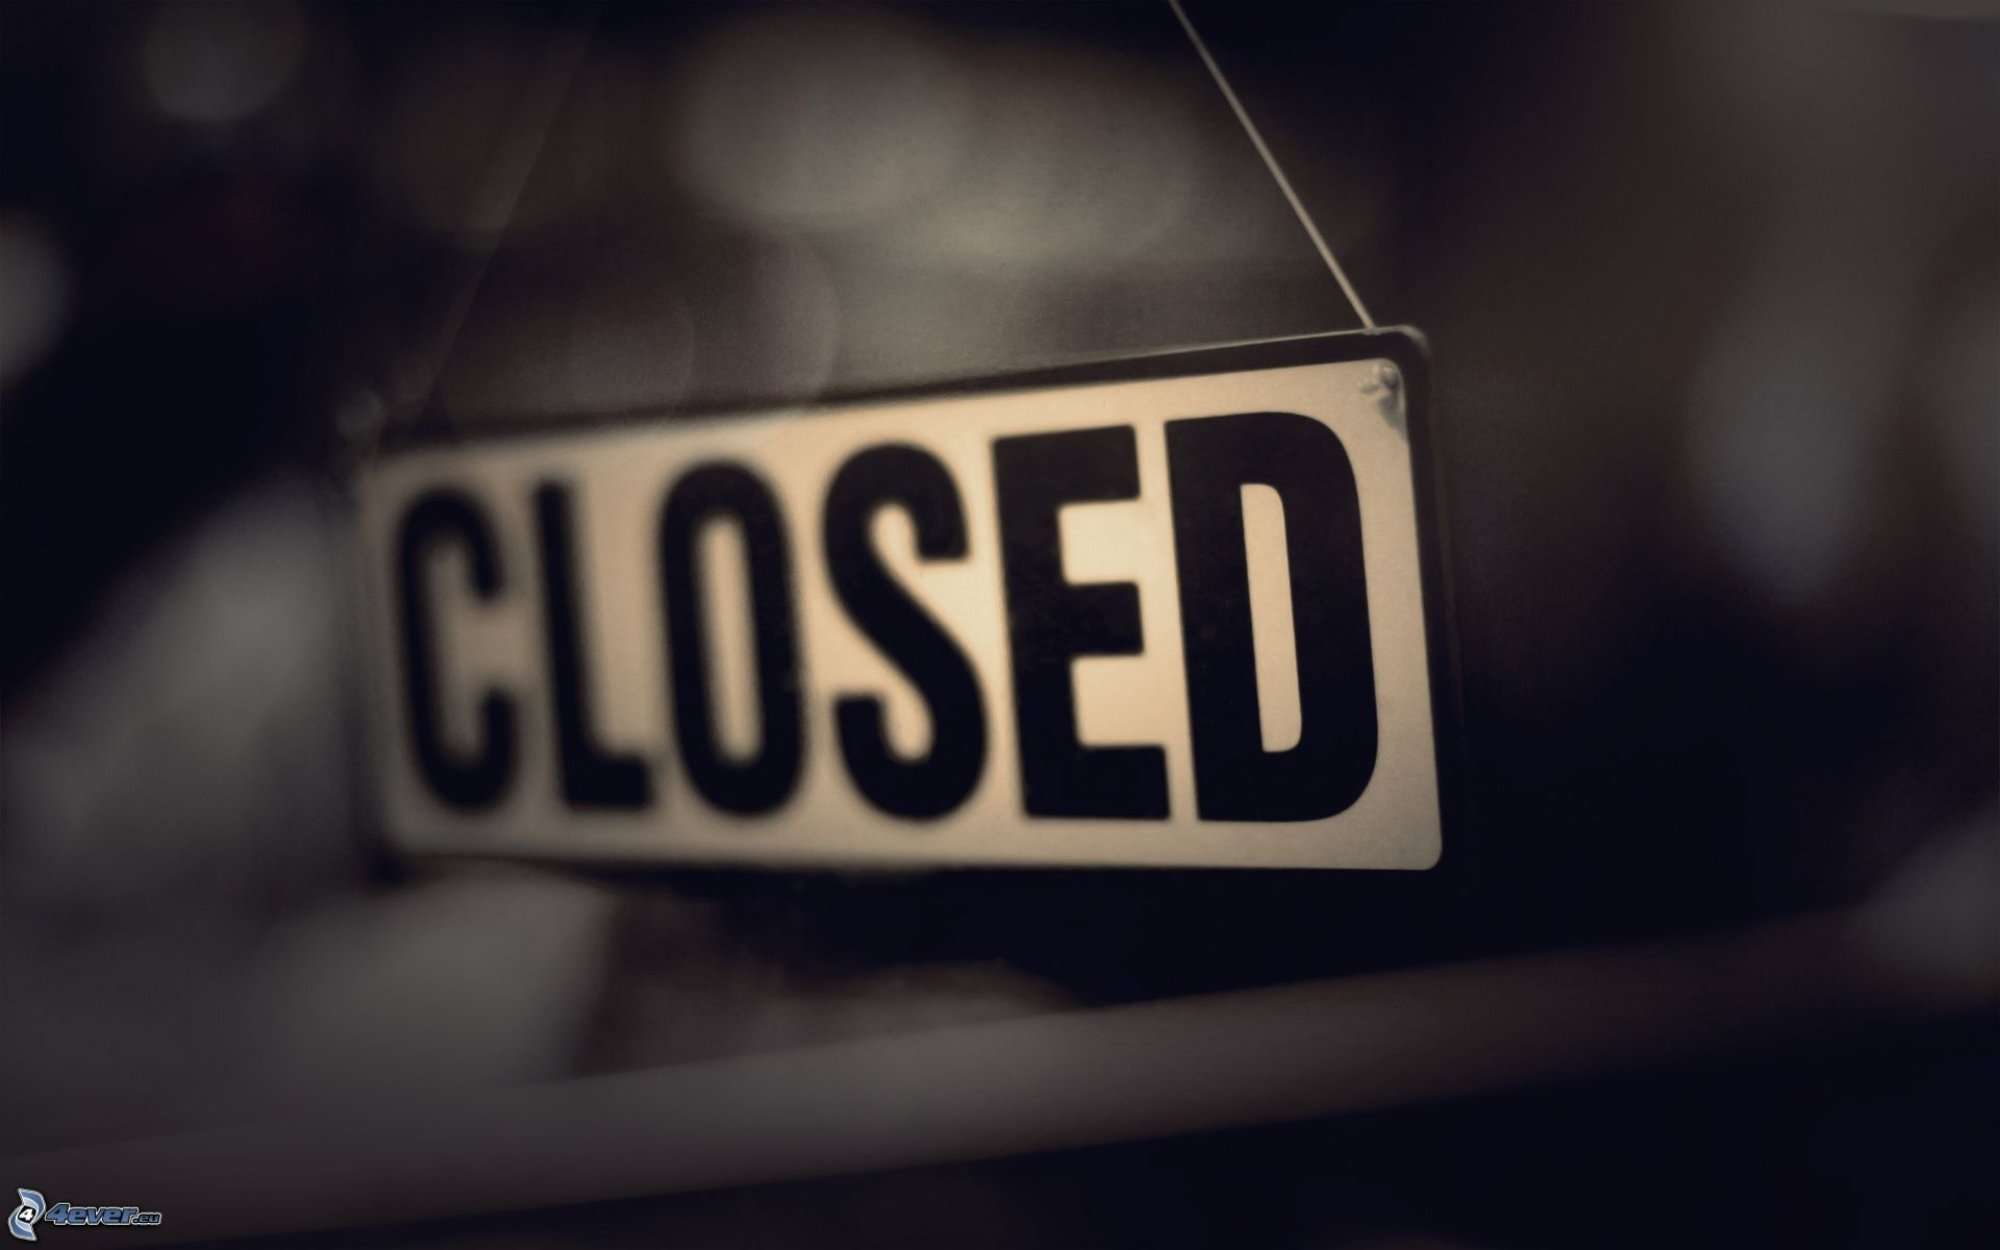 Do you know when it's time to close a business?